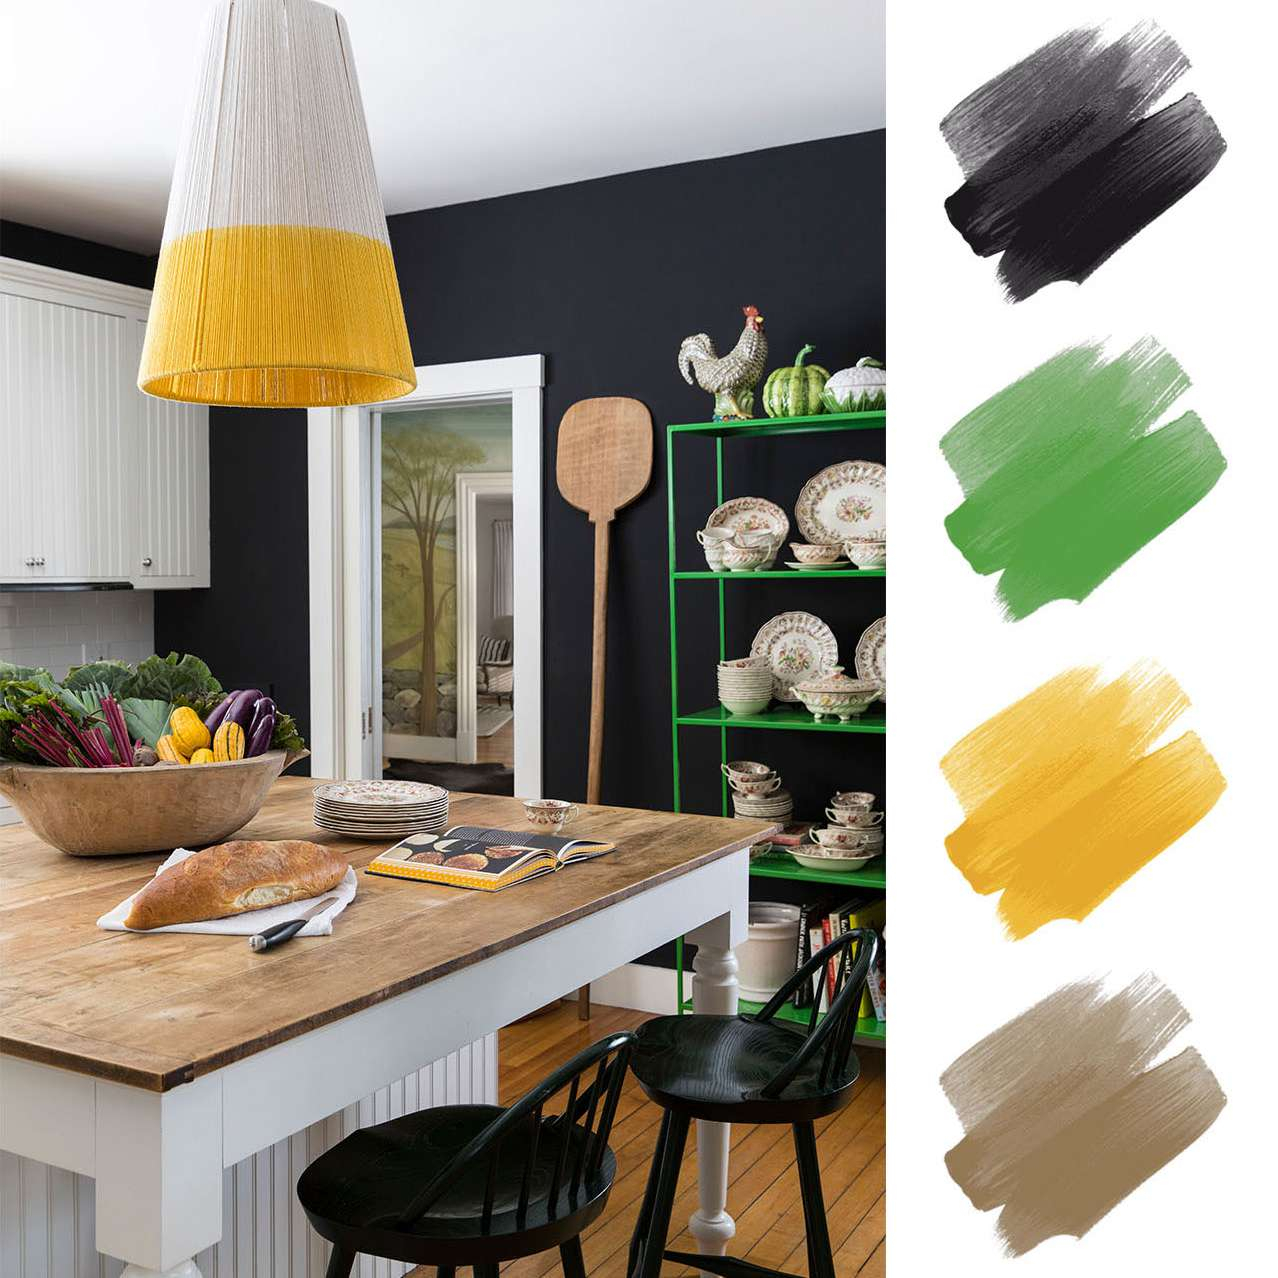 kitchen color schemes - black, green, and yellow